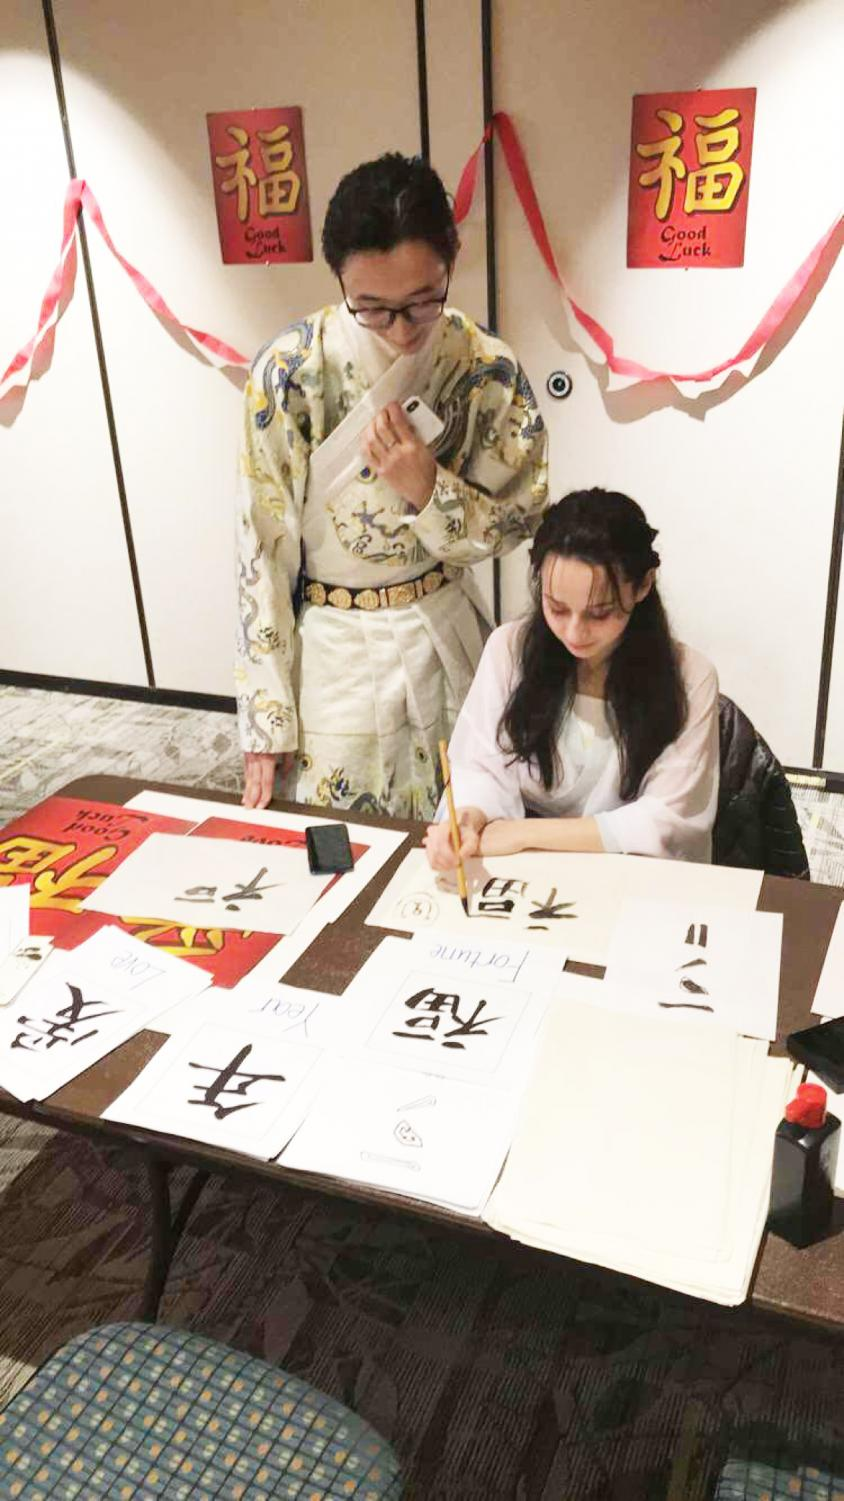 Sophomore Pan Bowen and freshman Hind Albakri practice calligraphy while celebrating Chinese New Year at Pitt-Bradford on Feb. 4.  | Photo courtesy of Hind Albakri